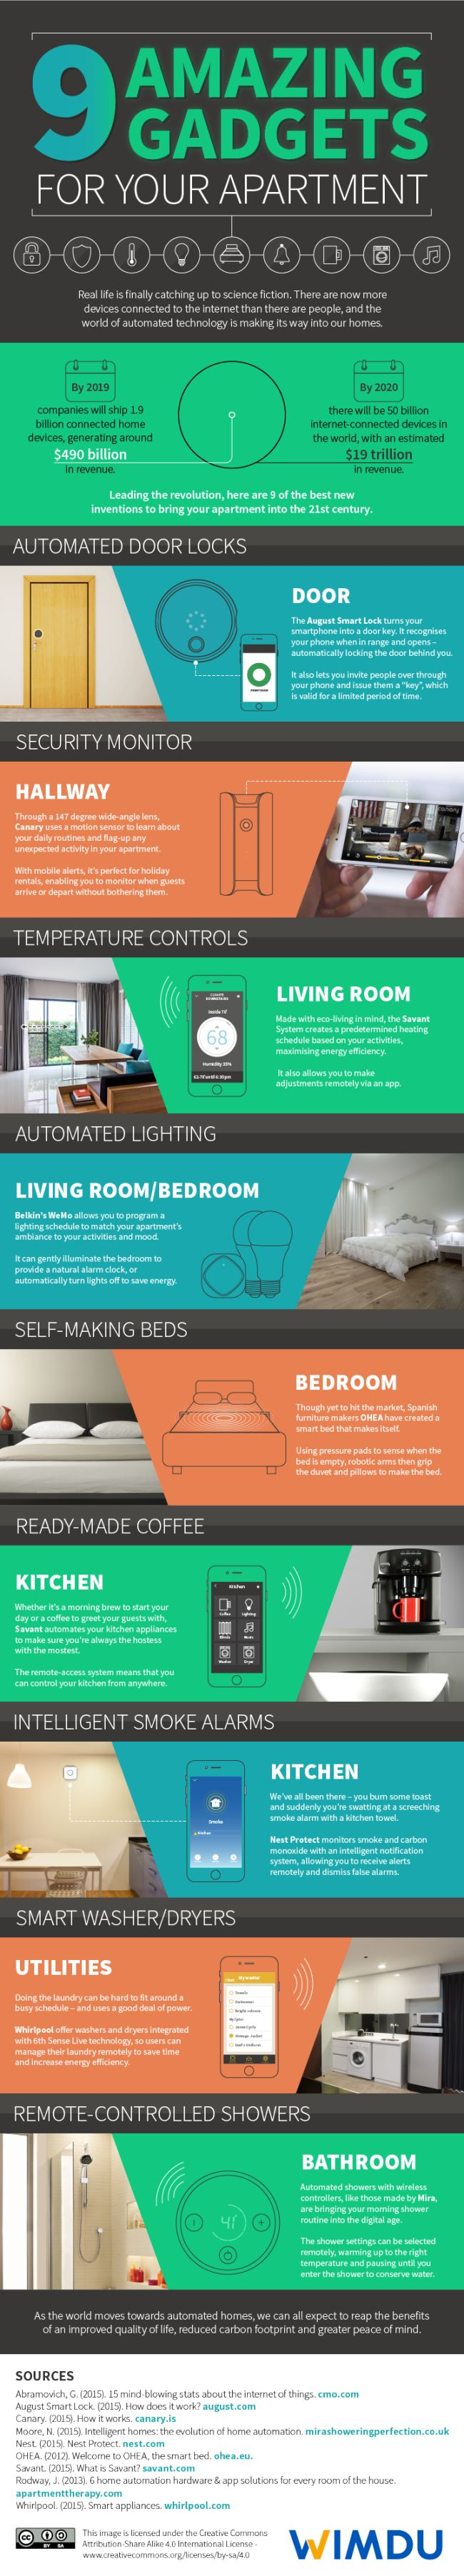 http://www.tipsographic.com/9-amazing-gadgets-will-transform-apartment-living/